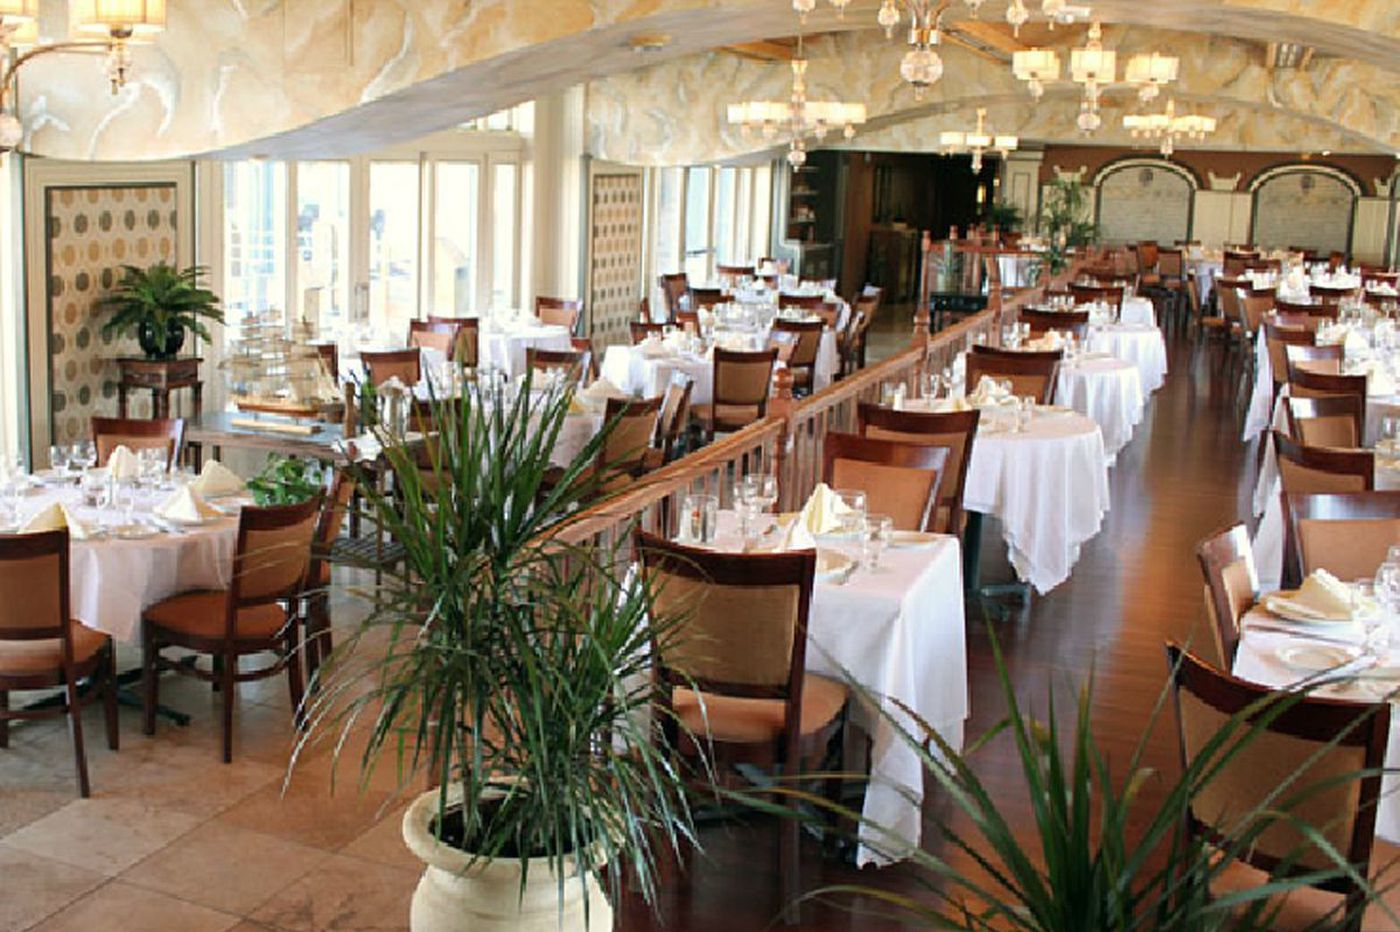 La Veranda closes after nearly 30 years on Penn's Landing